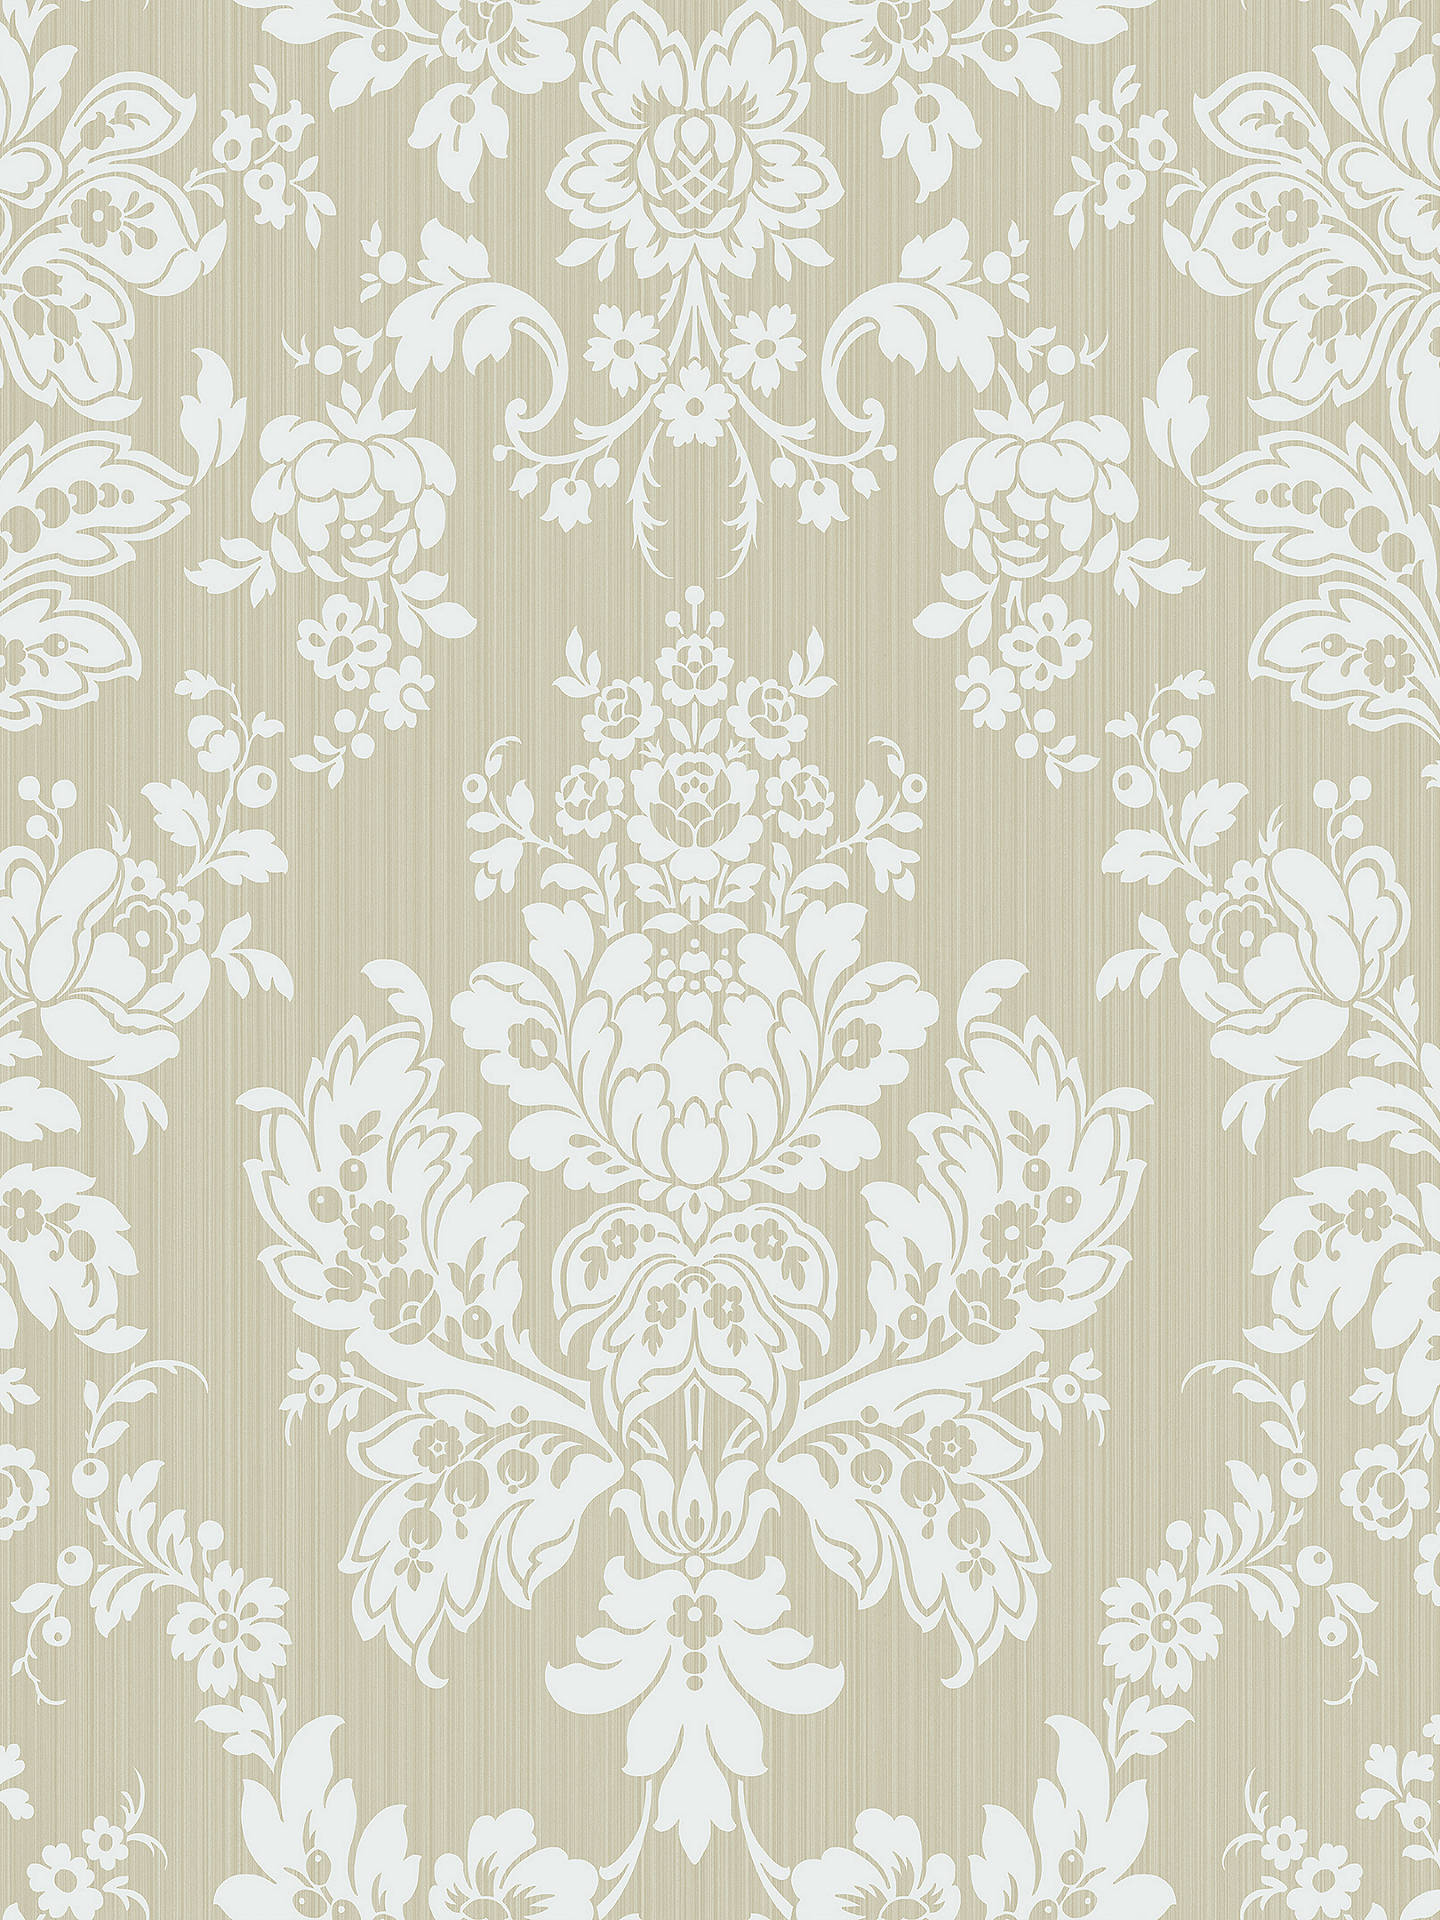 Buy Cole & Son Mariinsky Giselle Paste the Wall Wallpaper, Old Olive 108/5029 Online at johnlewis.com